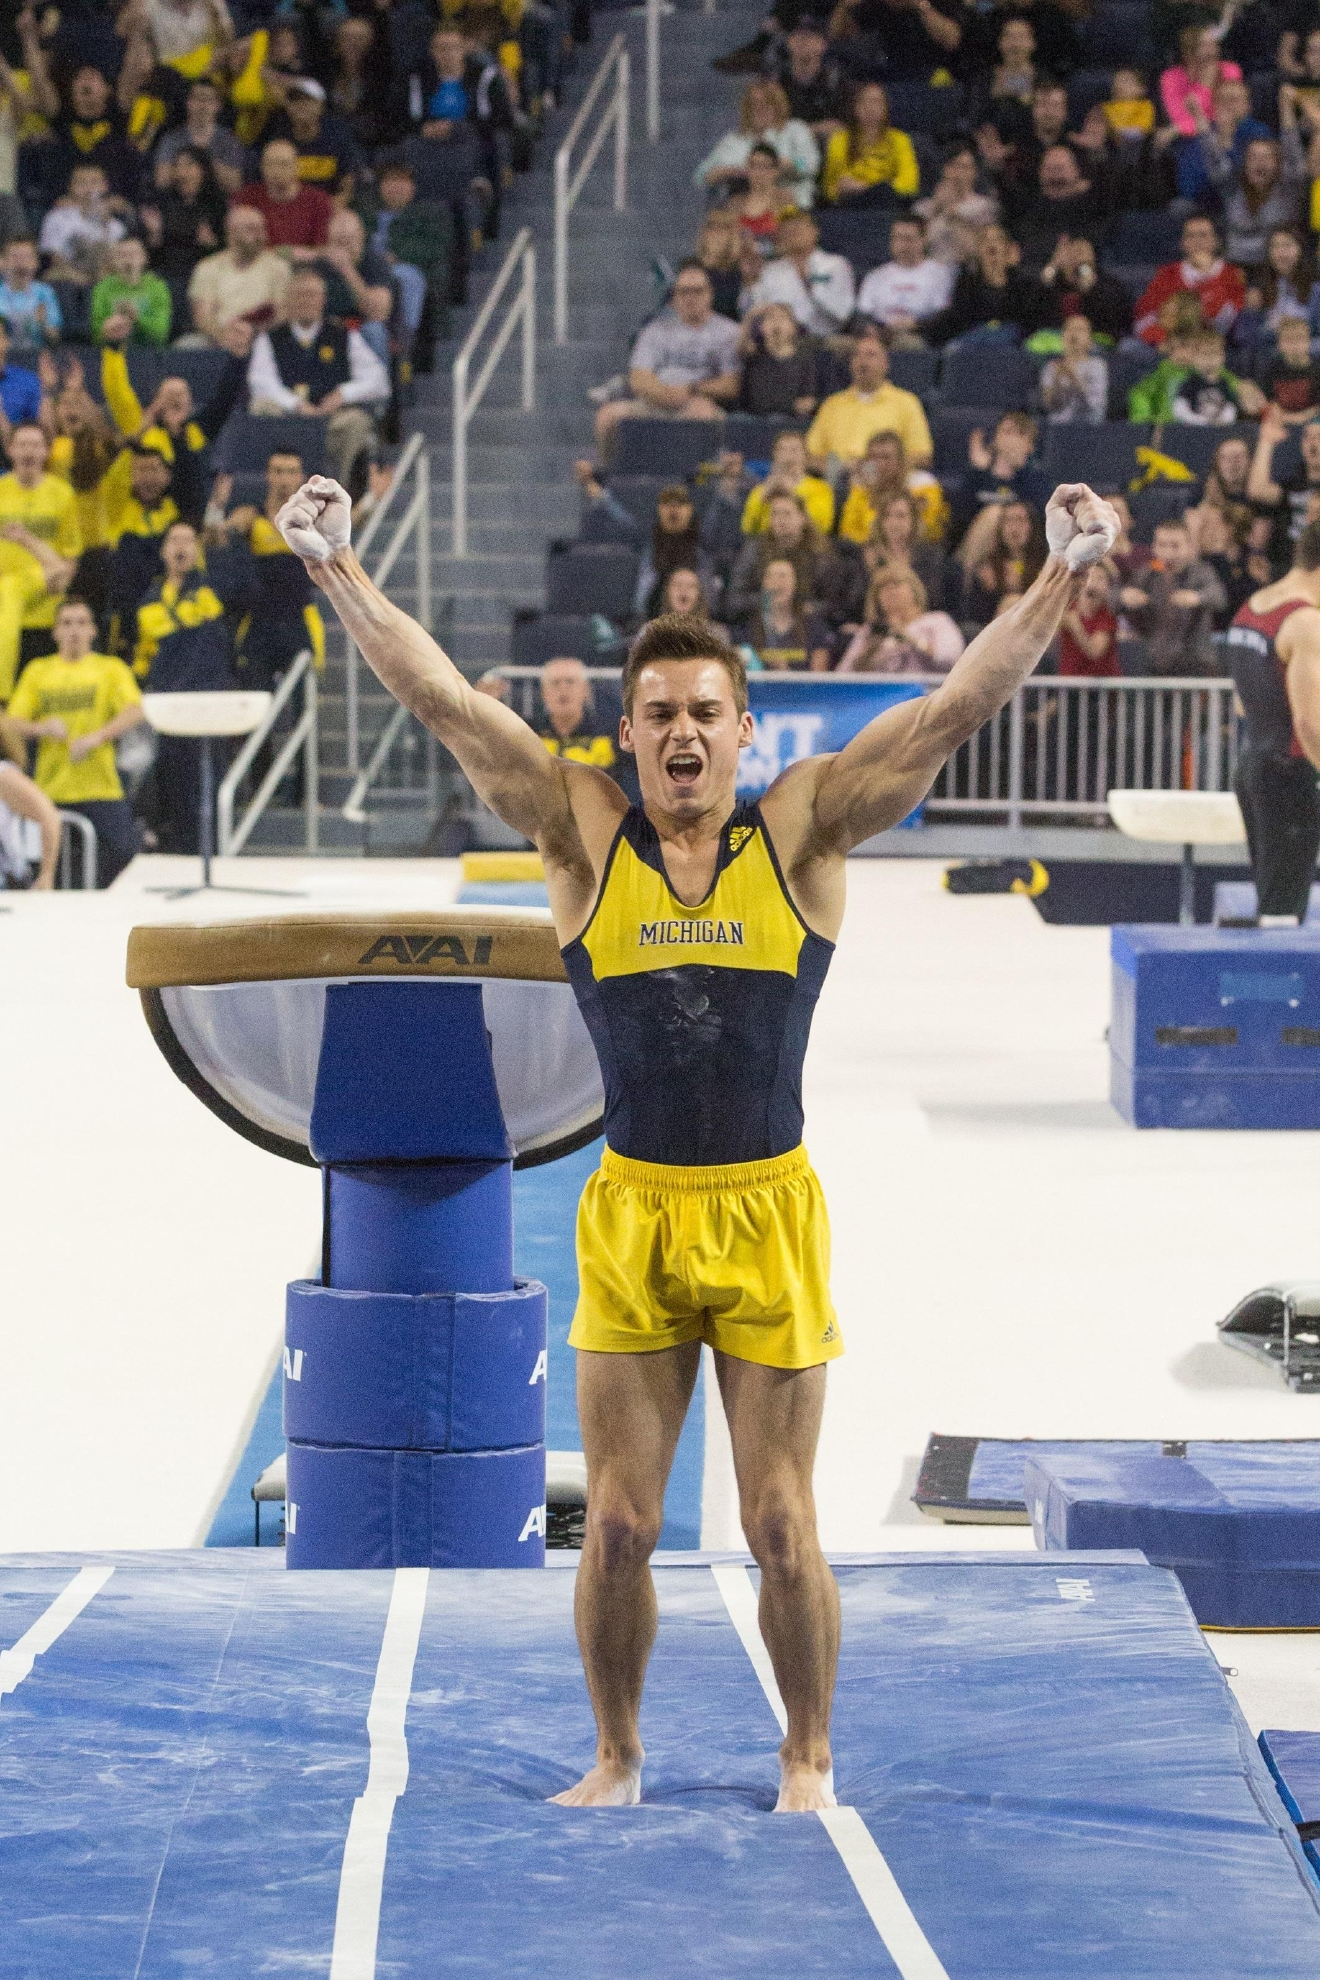 University of Michigan men's Gymnastics team wins the NCAA Championship at the Crisler Arena on April 11, 2014, in Ann Arbor, MI. Photo Credit: Michigan Photo Services.